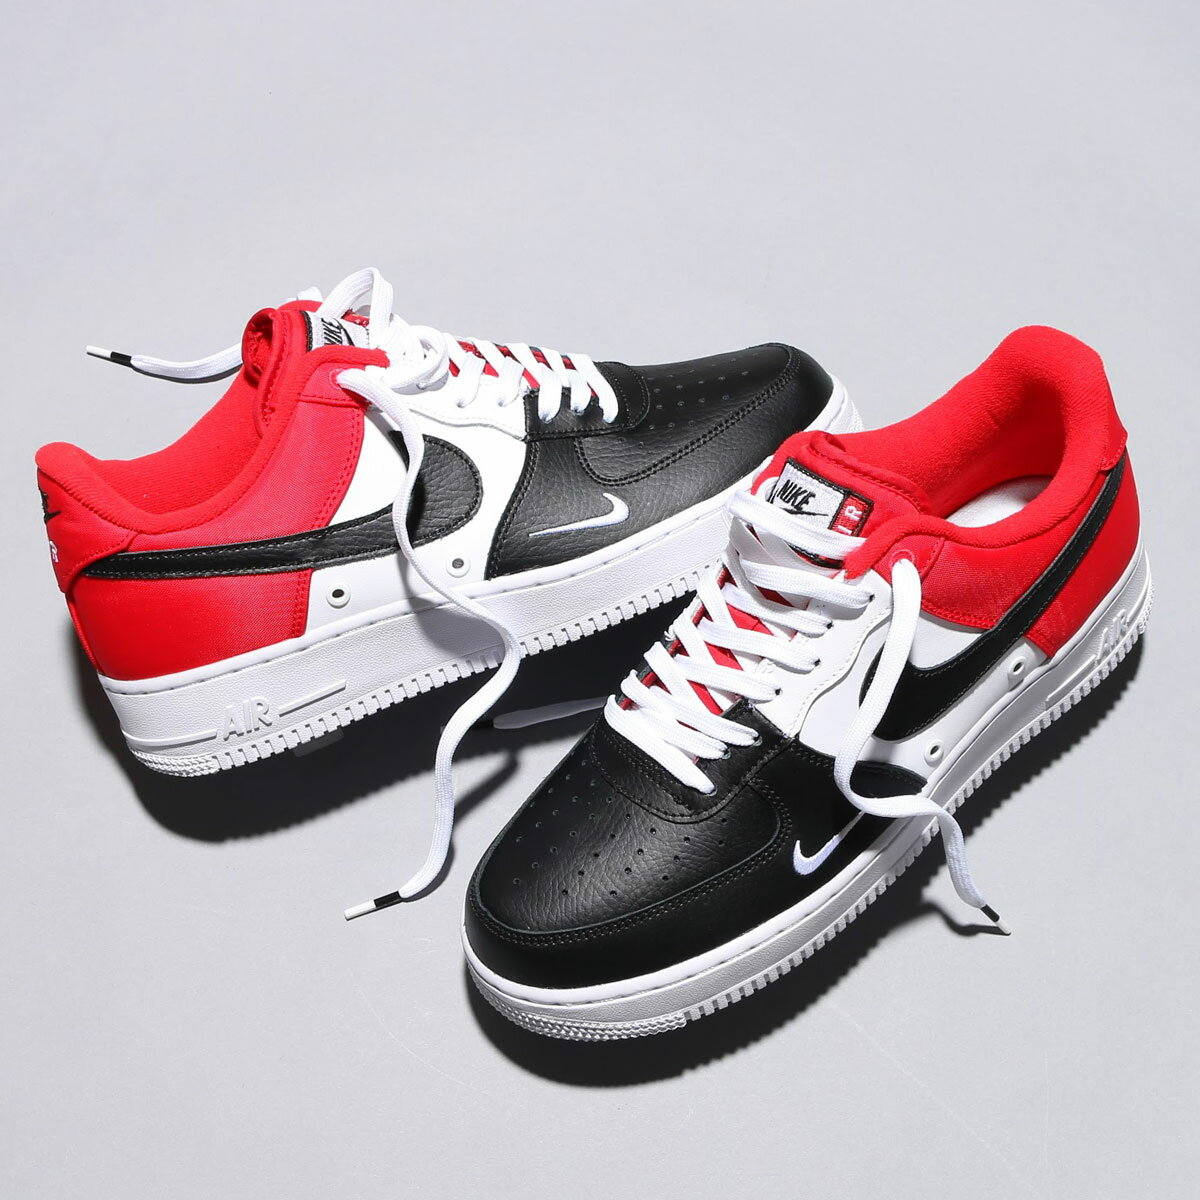 NIKE AIR FORCE 1 '07 LV8(ナイキ エア フォース 1 07 LV8)UNIVERSITY RED/BLACK-WHITE-PURE PL...